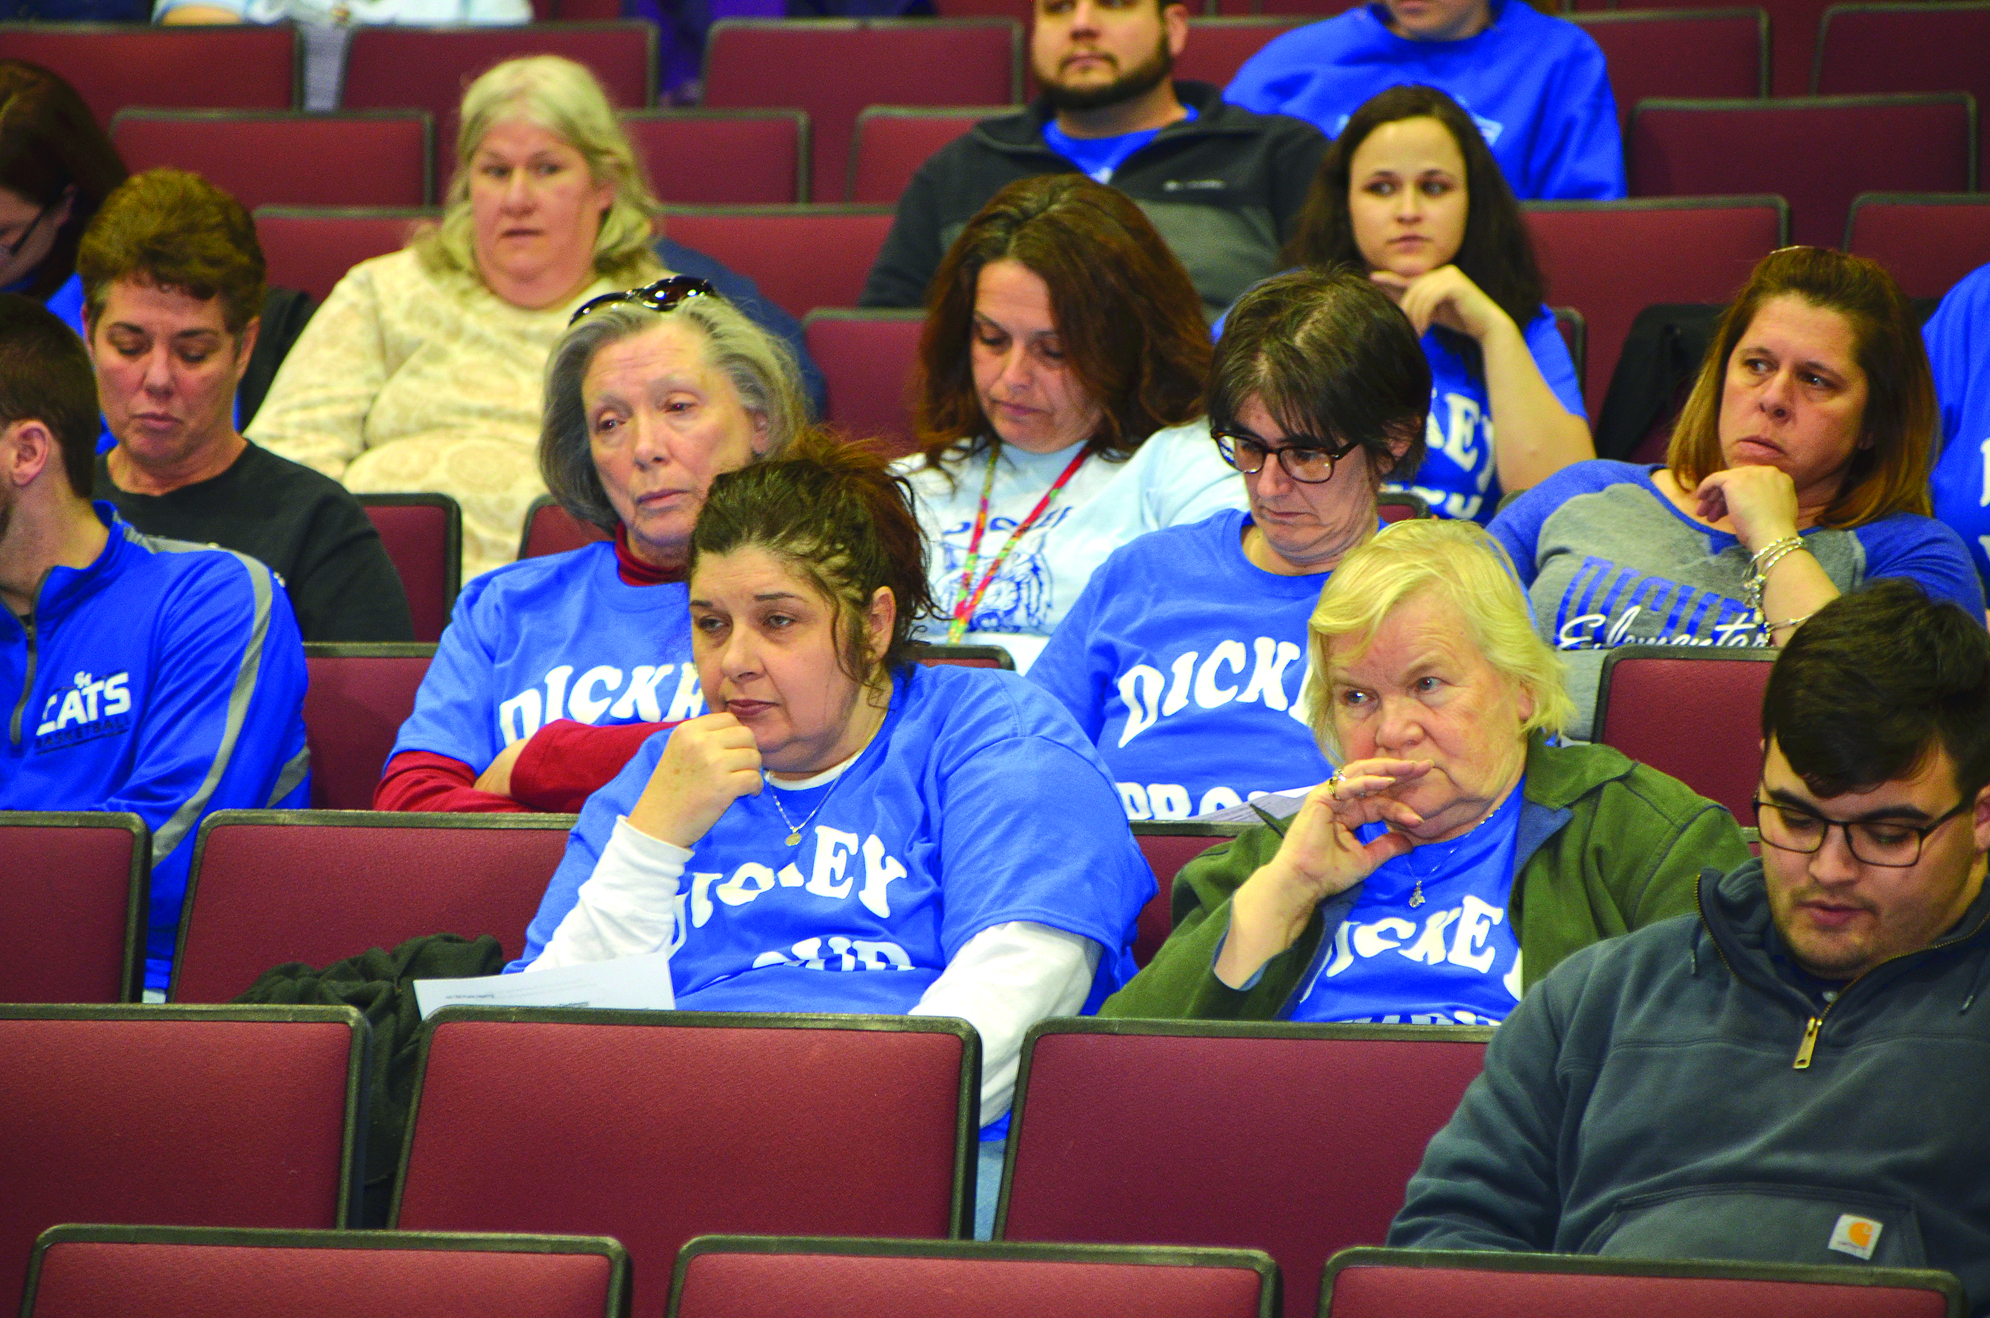 School Board Hears Dickey Parents At Public Hearing | News For Keystone Central School District Calendar